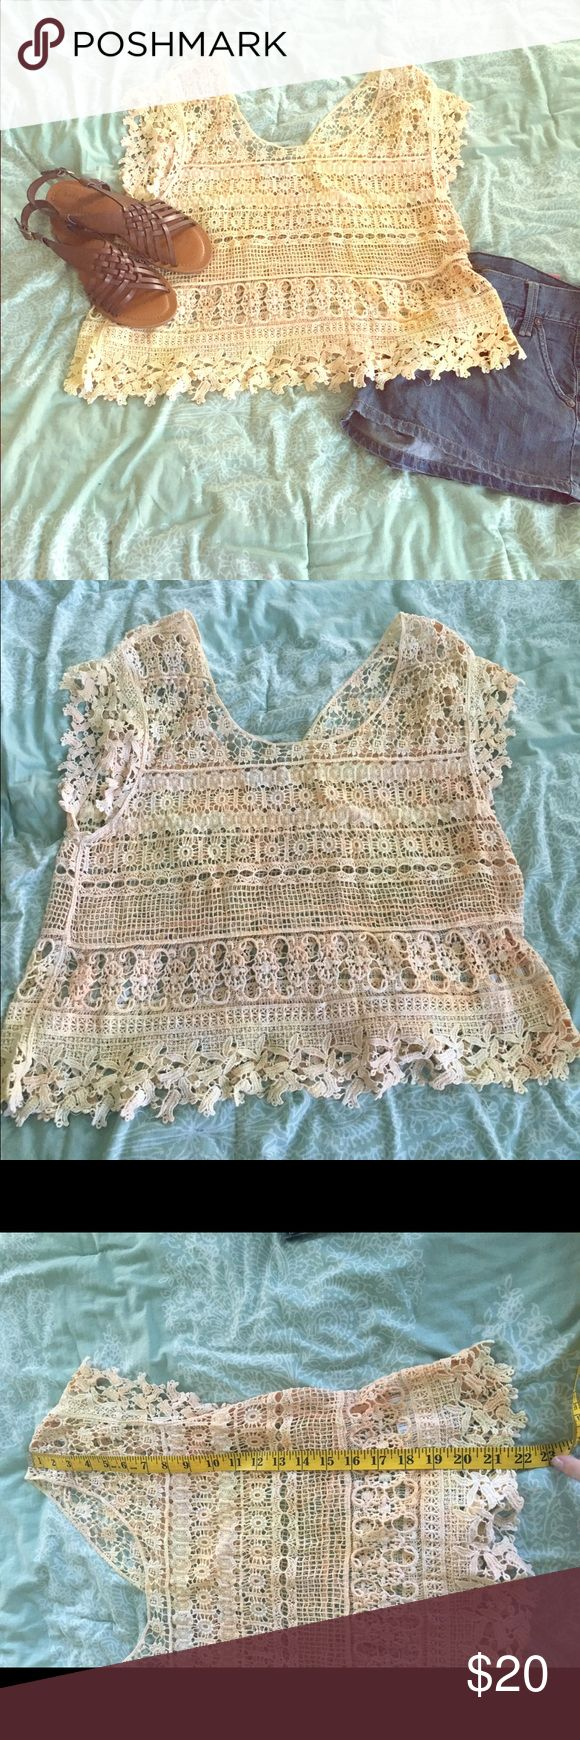 Ecote crochet top Beautiful crochet top. Ecote brand from UO. Size medium. Very pretty cream pinkish color. About 22 in long. Urban Outfitters Tops